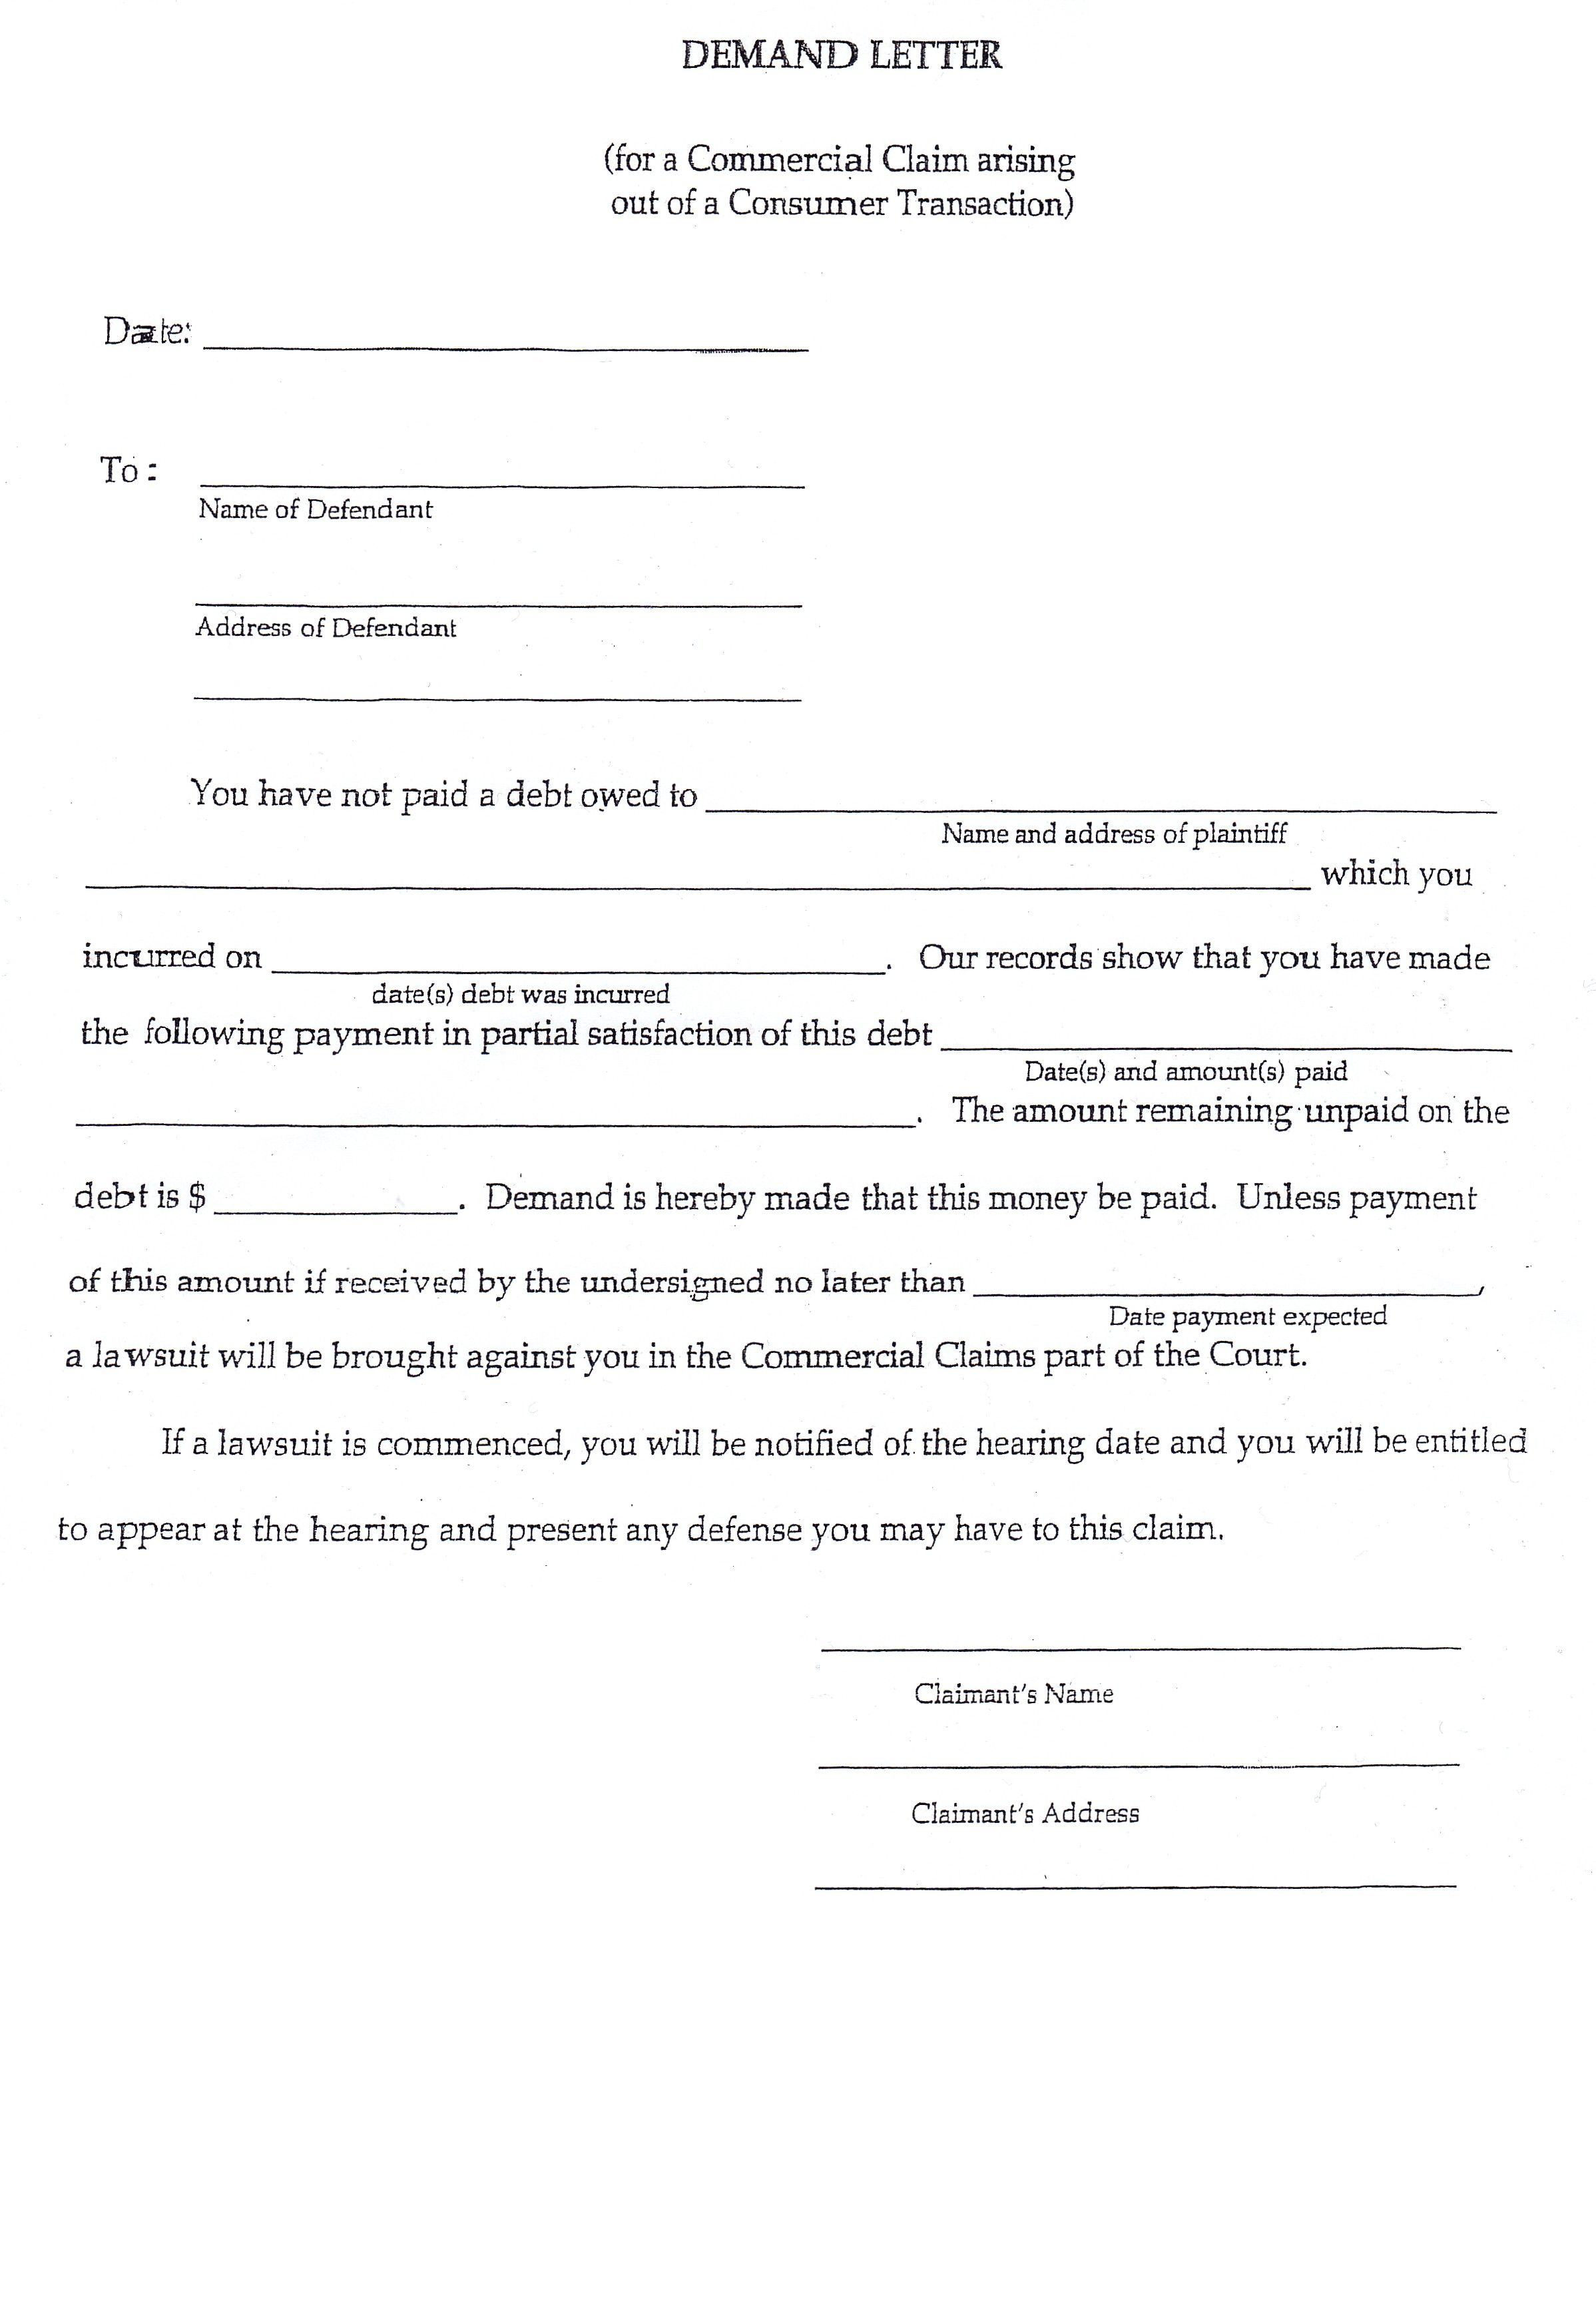 small claims demand letter sample court